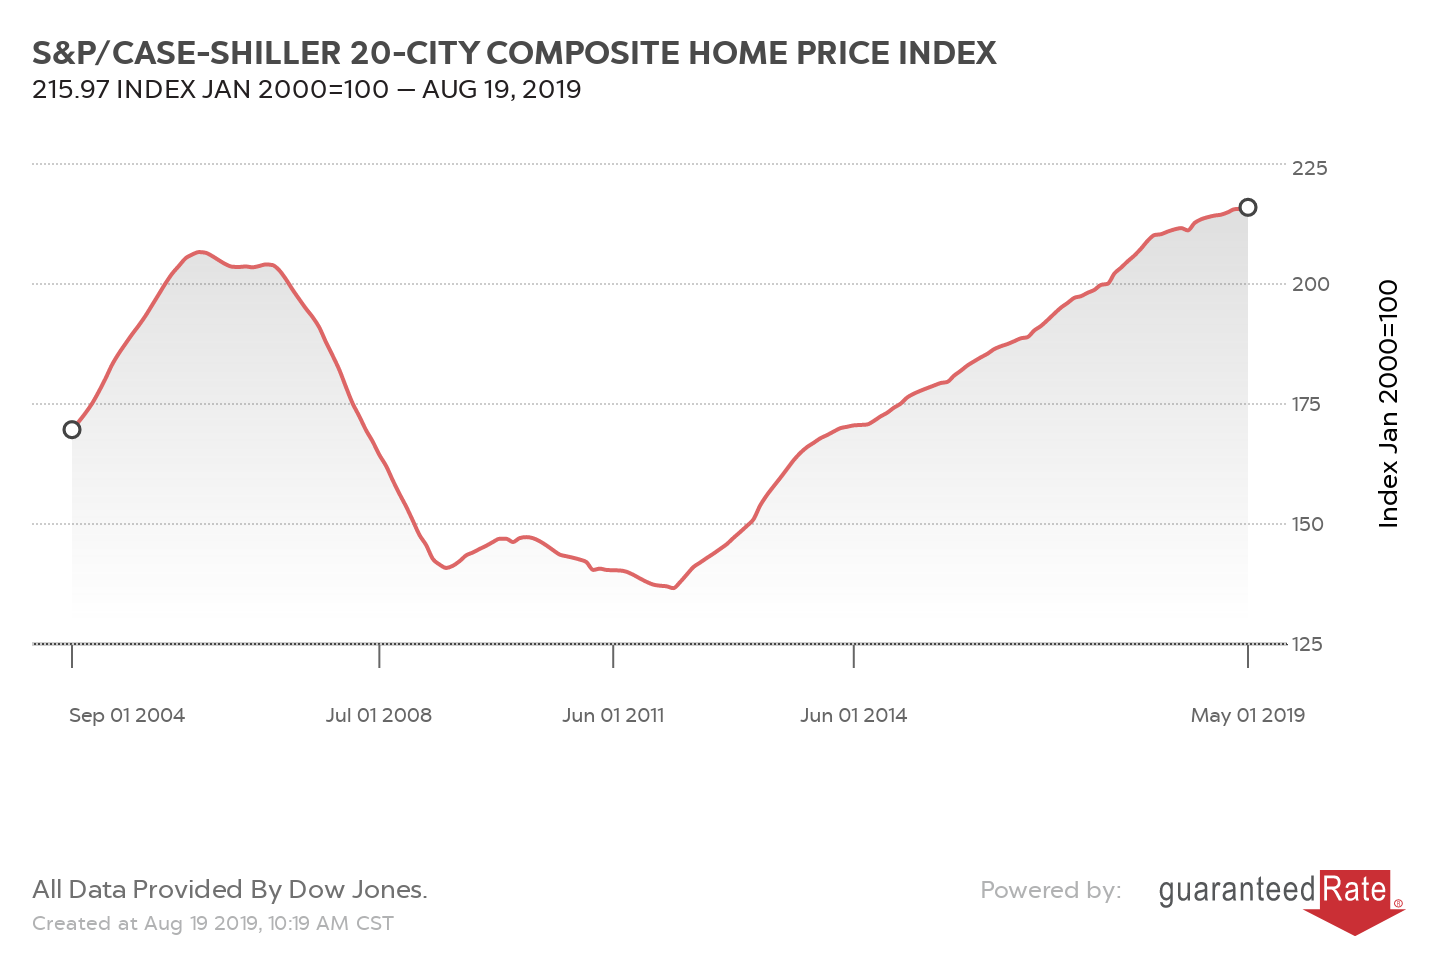 S&P/CASE-SHILLER 20-CITY COMPOSITE HOME PRICE INDEX